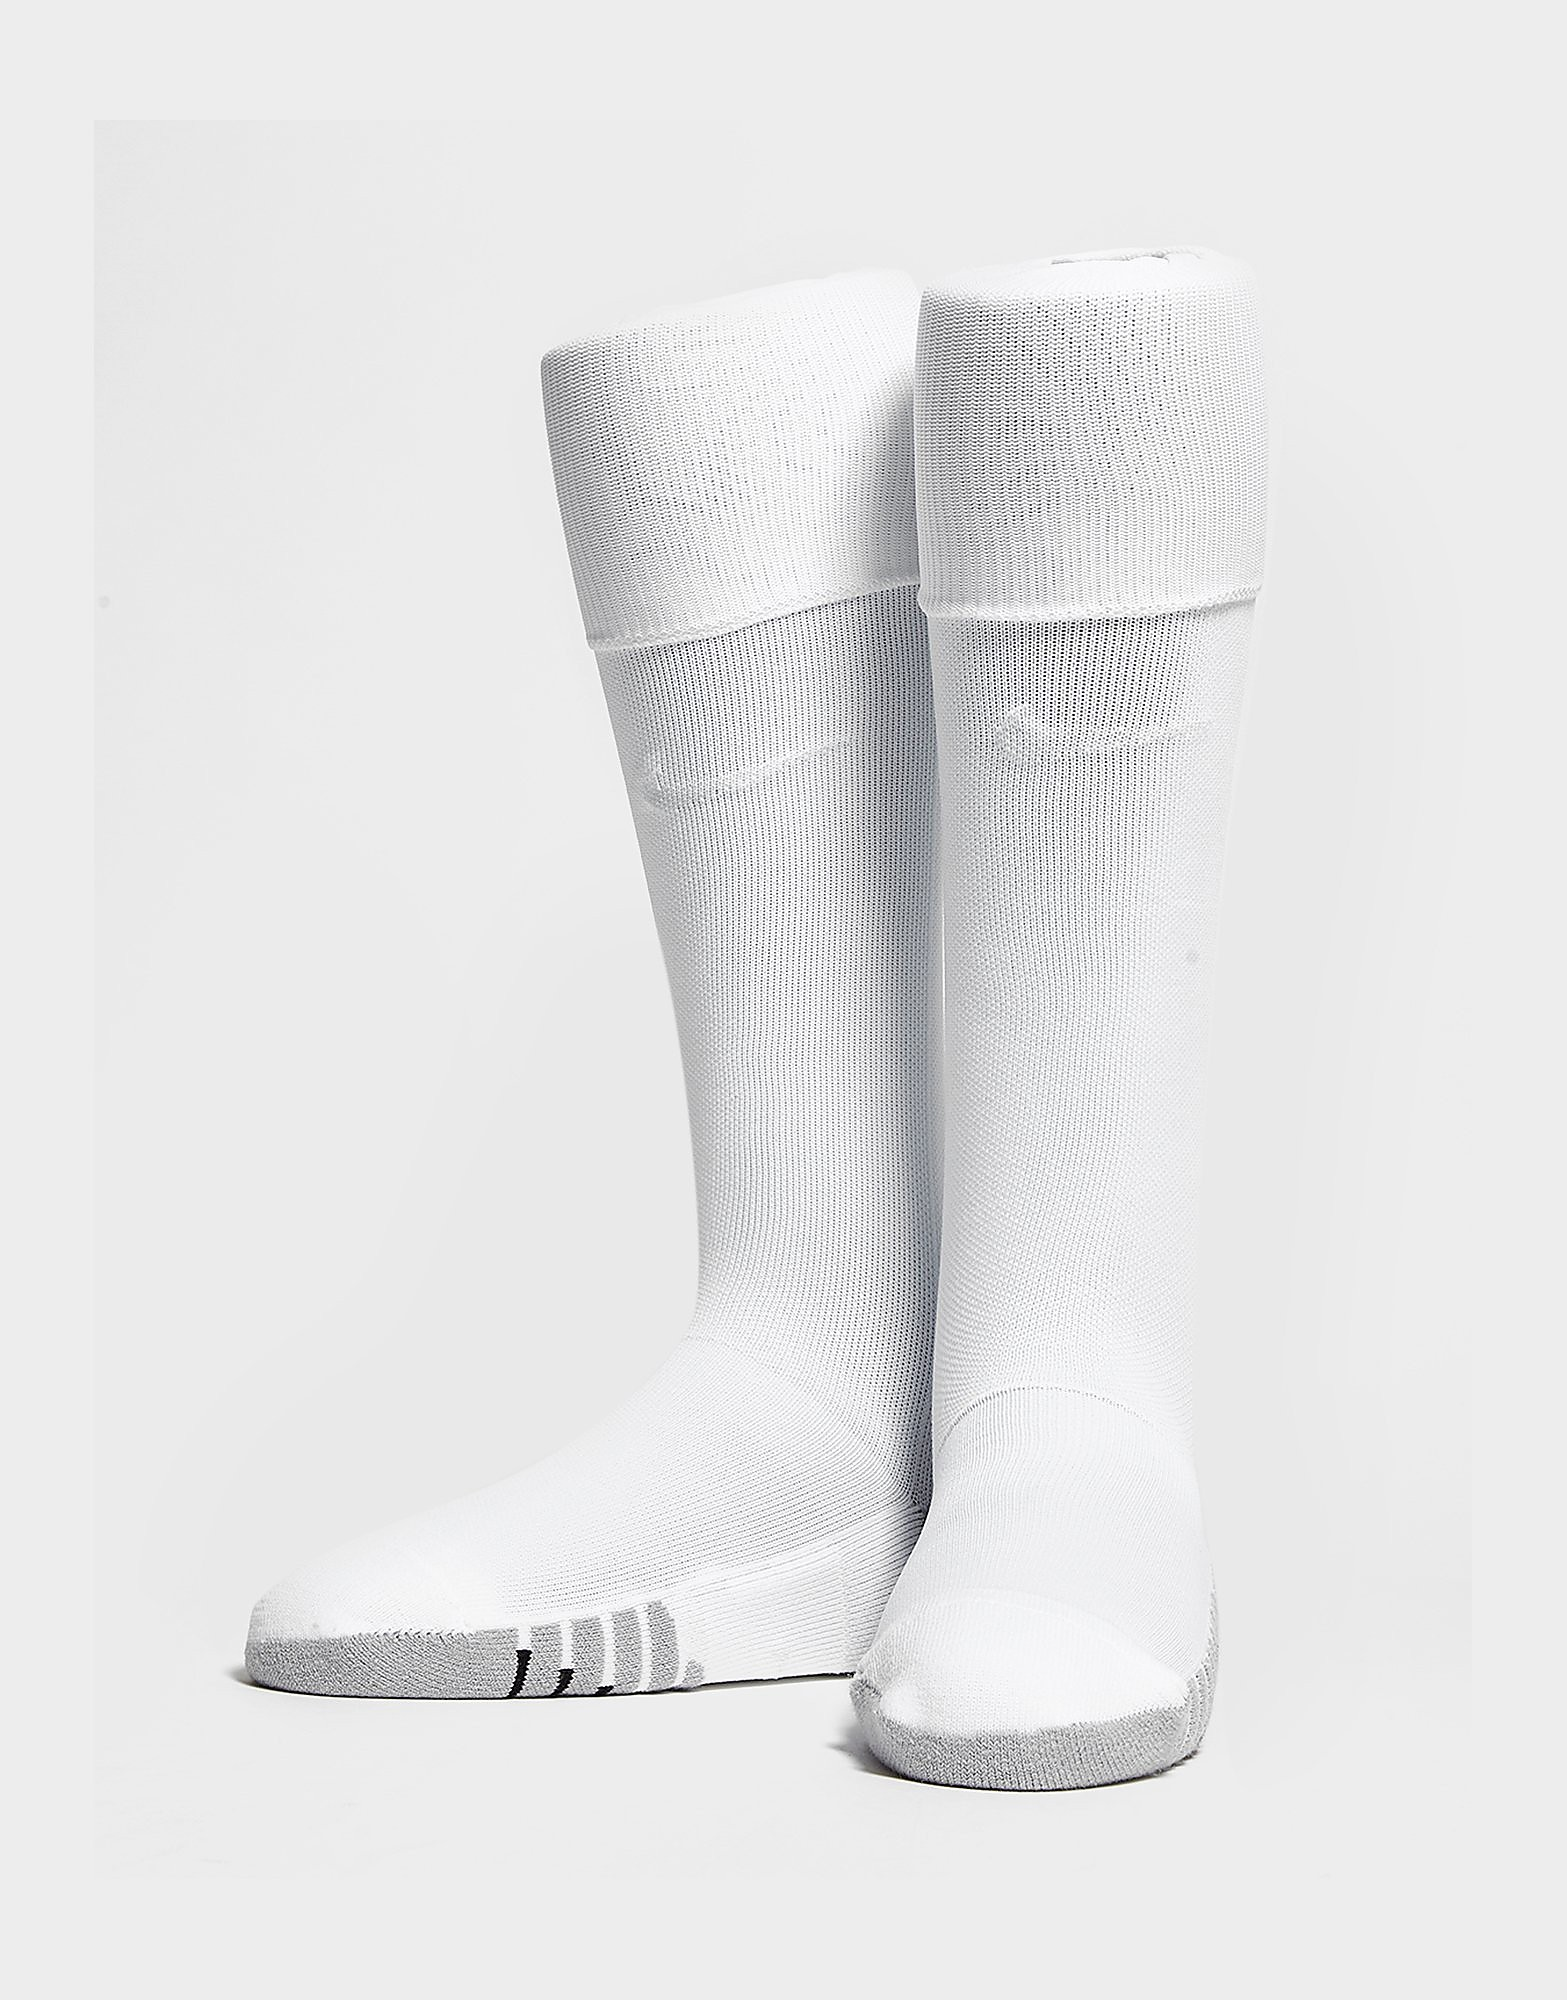 Nike Chaussettes England 2018 Homme